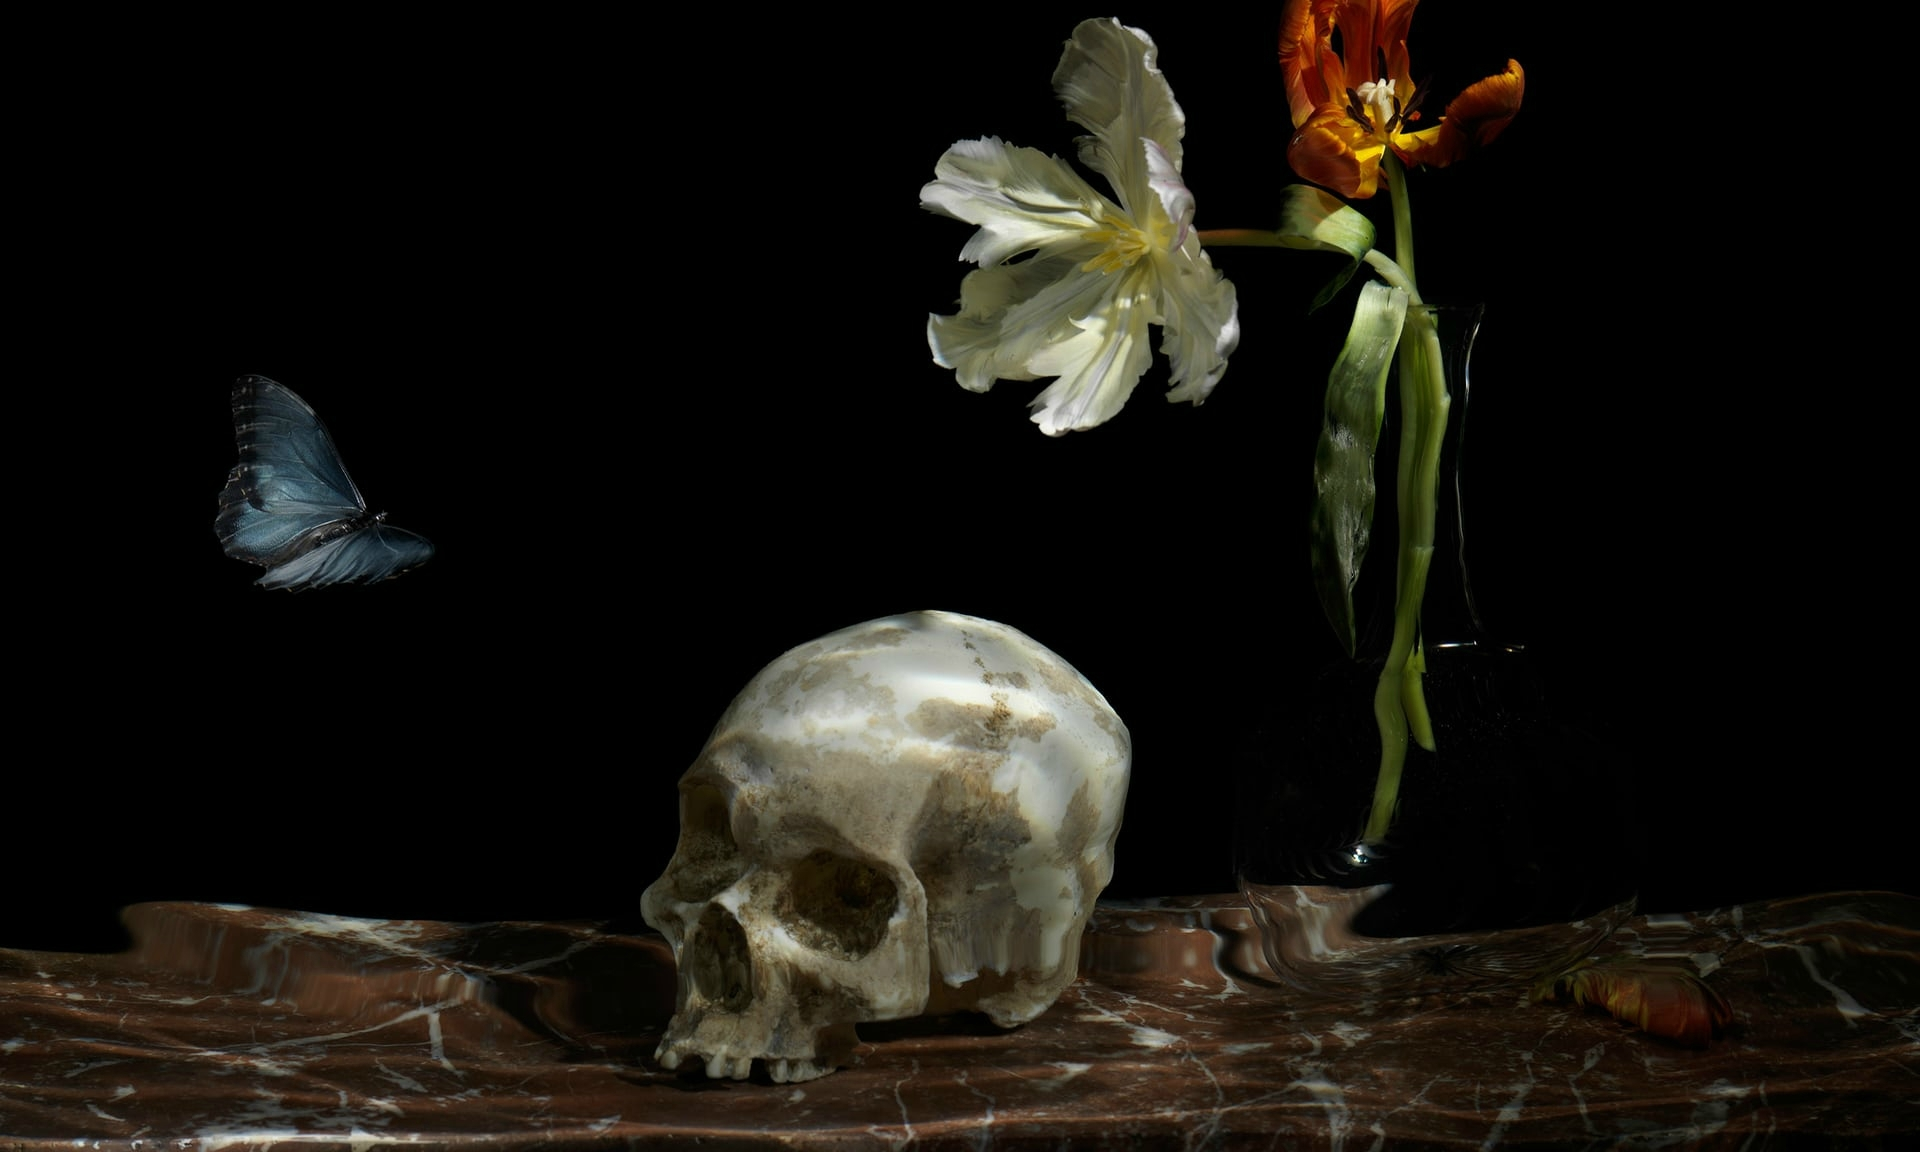 Alexander James's still life The Great Leveller (2010), from the Nature Morte exhibition at the Guildhall Art Gallery, London